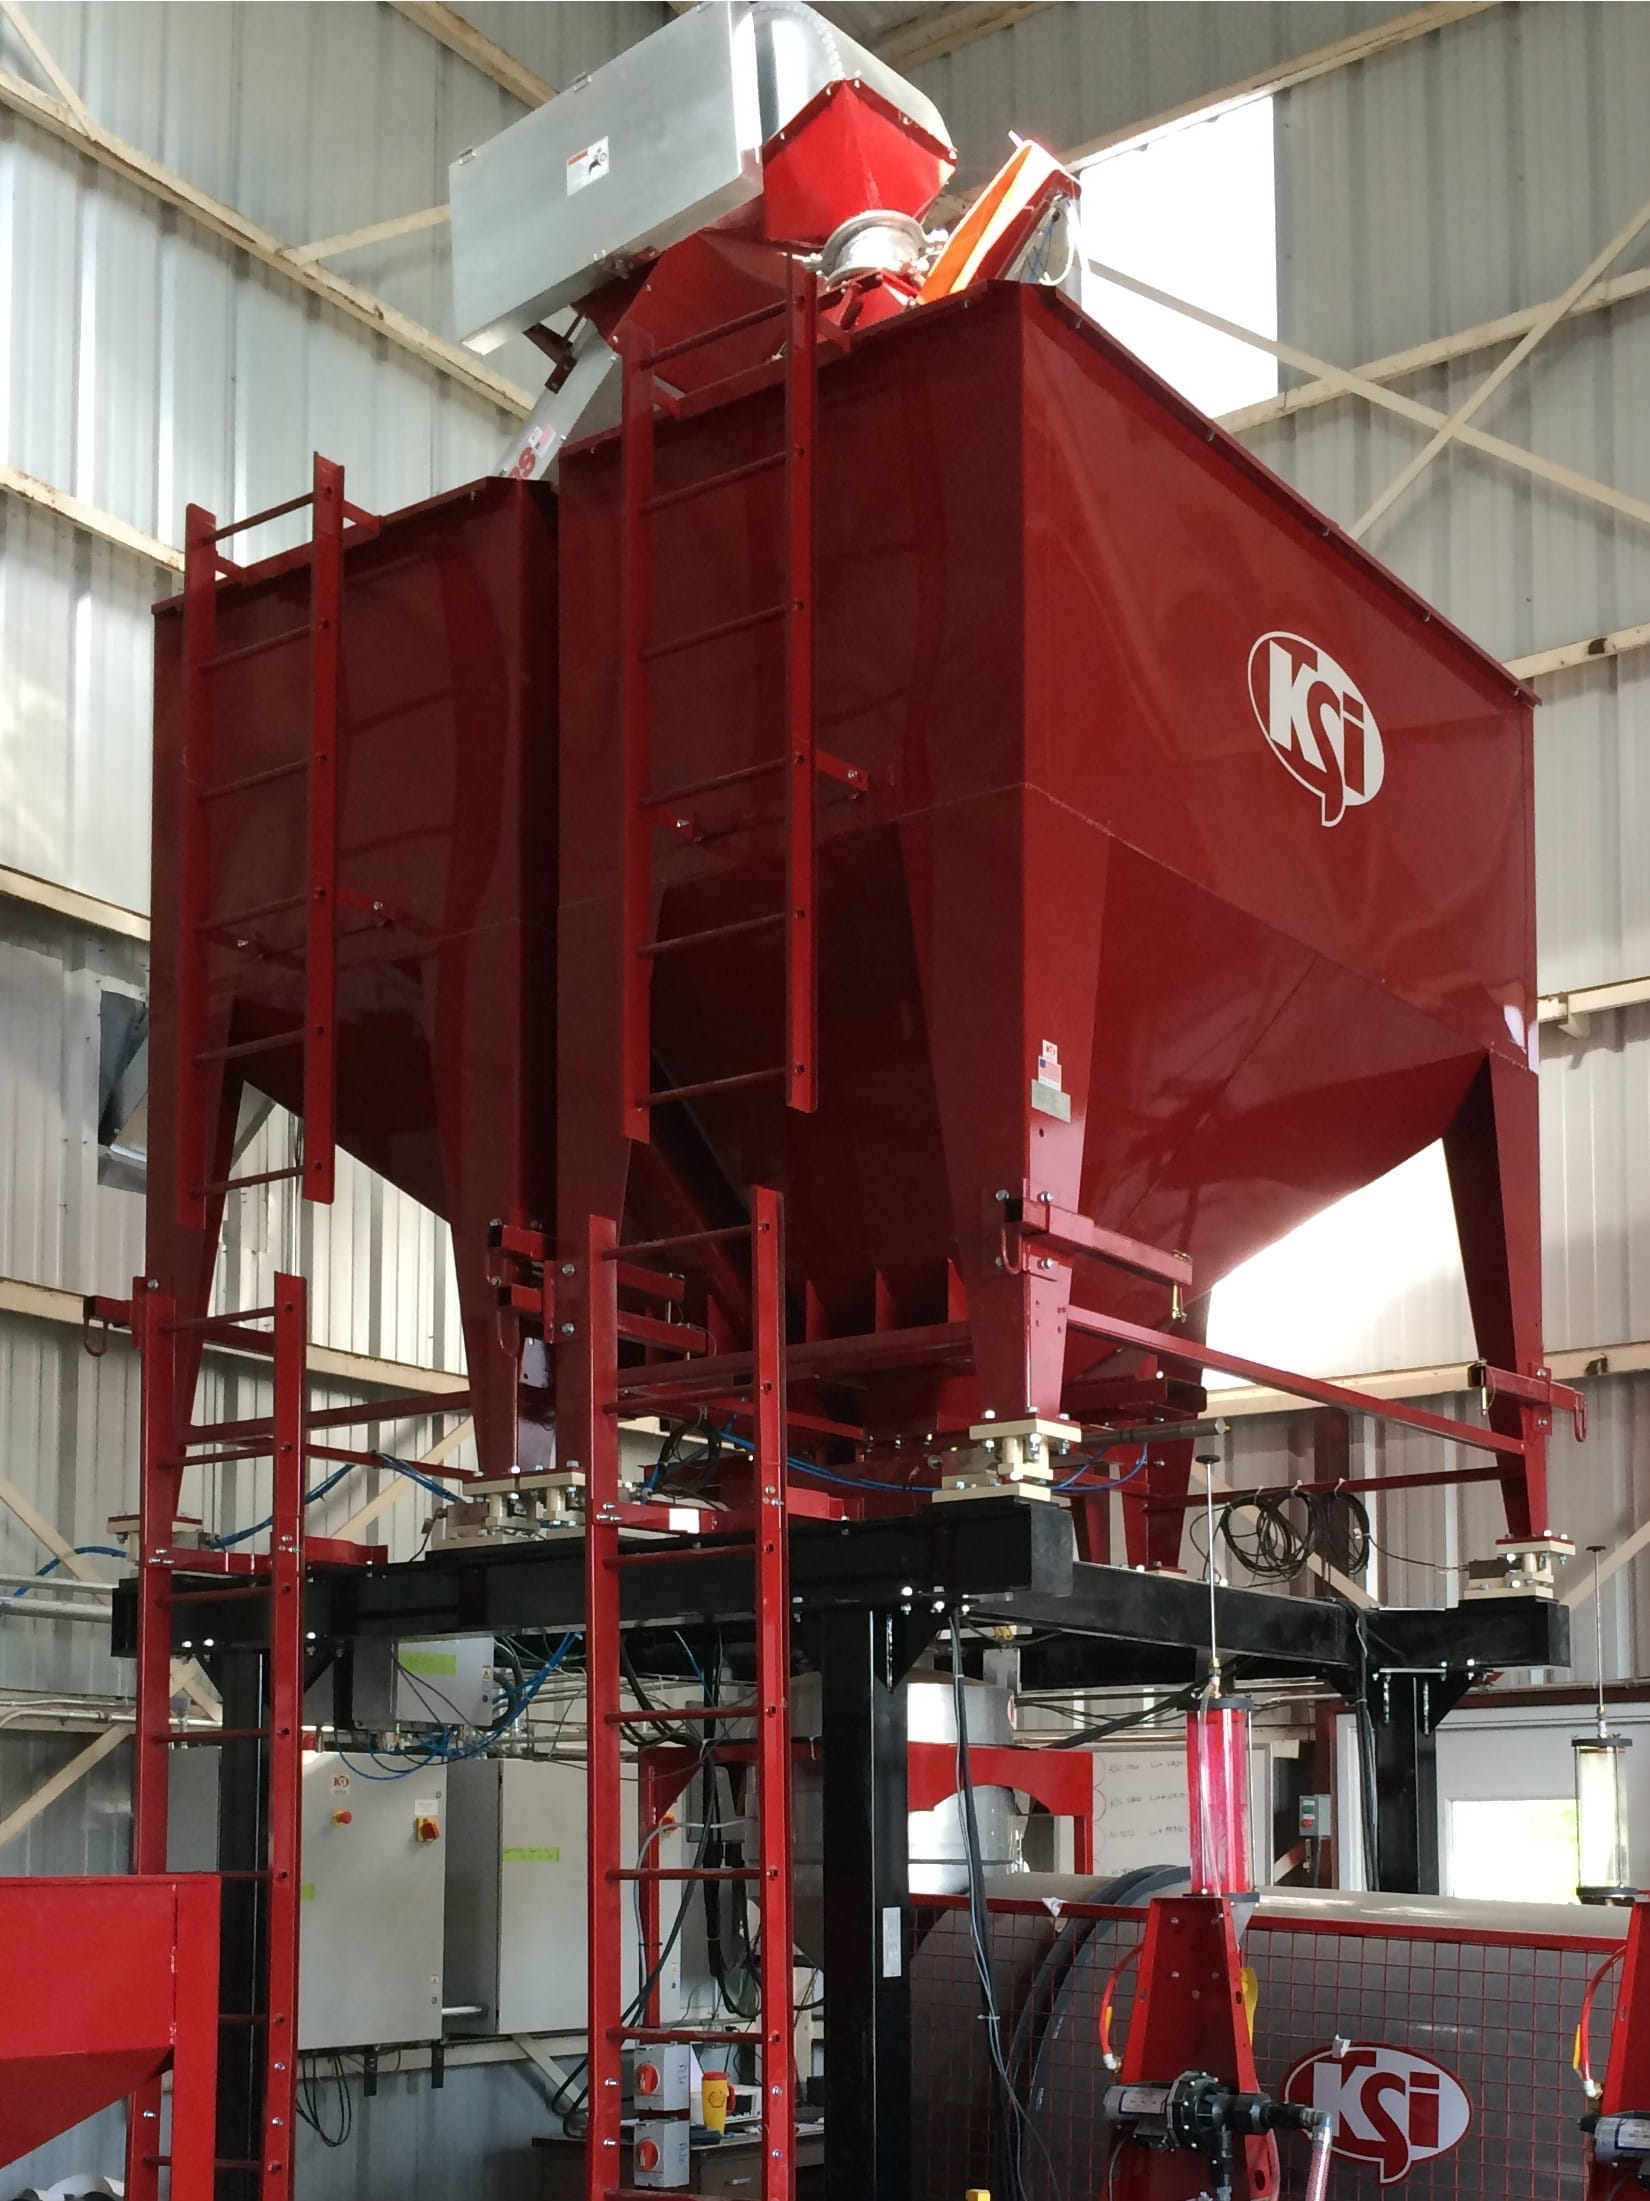 Ksi Hoppers Surge Scaling Staging Ksi Conveyors